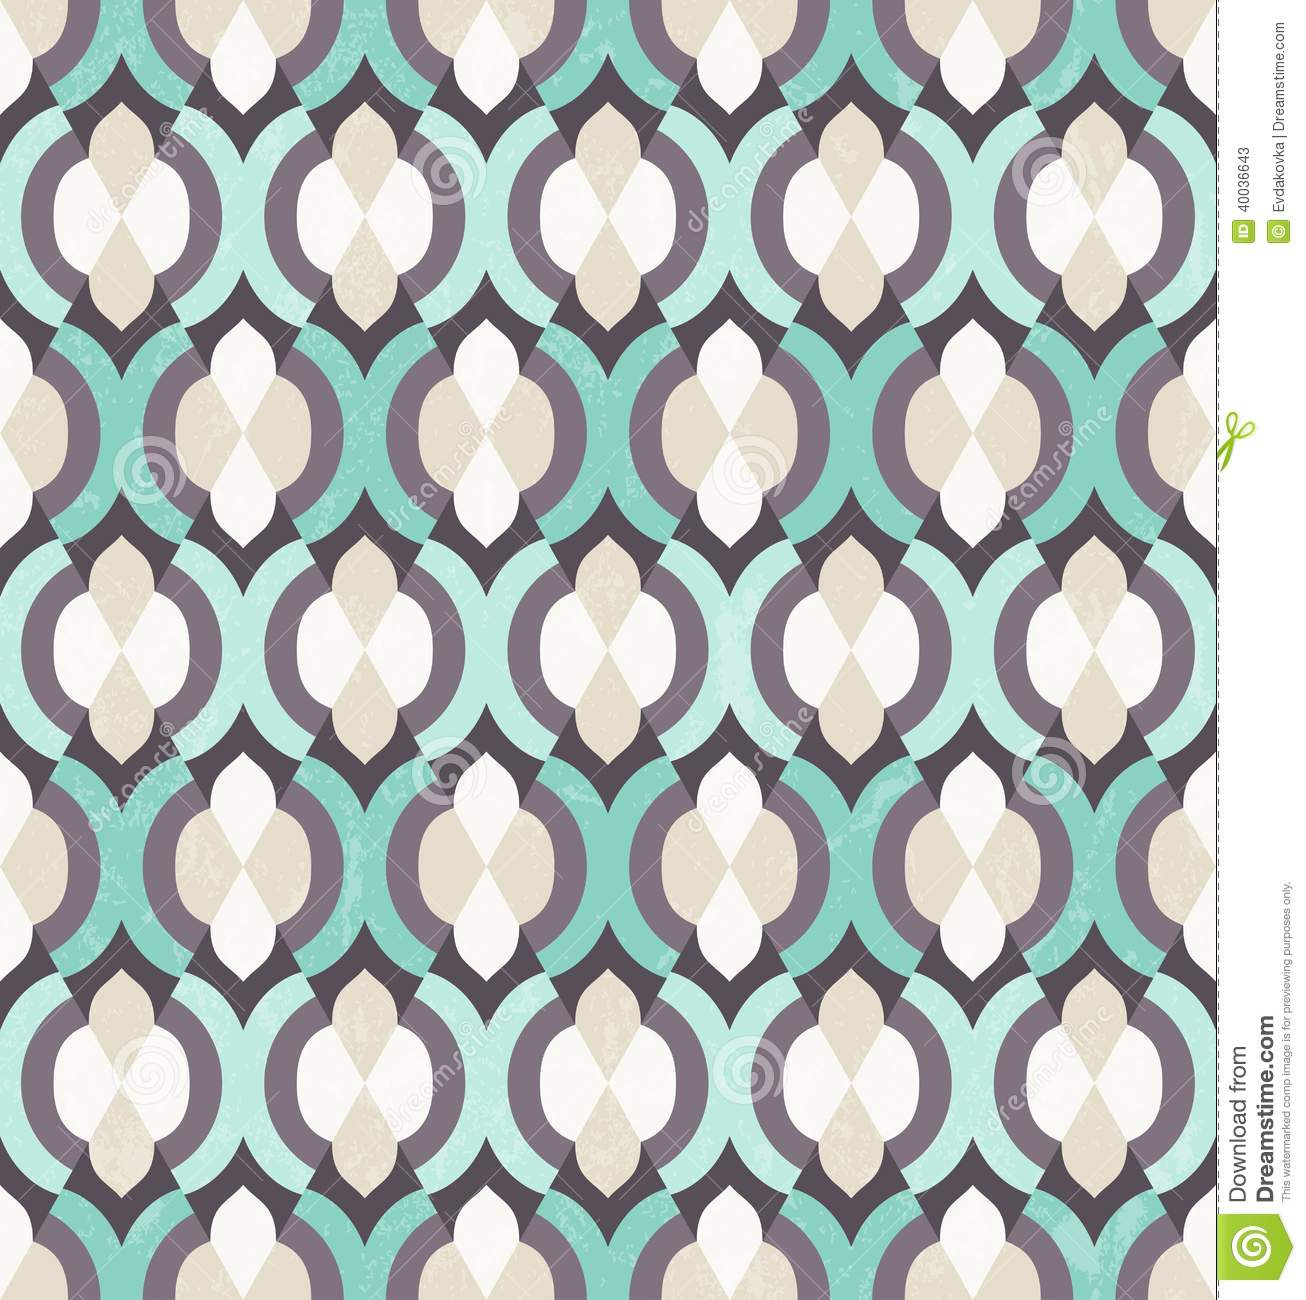 Moroccan patterns clipart vector royalty free library Moroccan print clipart - ClipartFox vector royalty free library